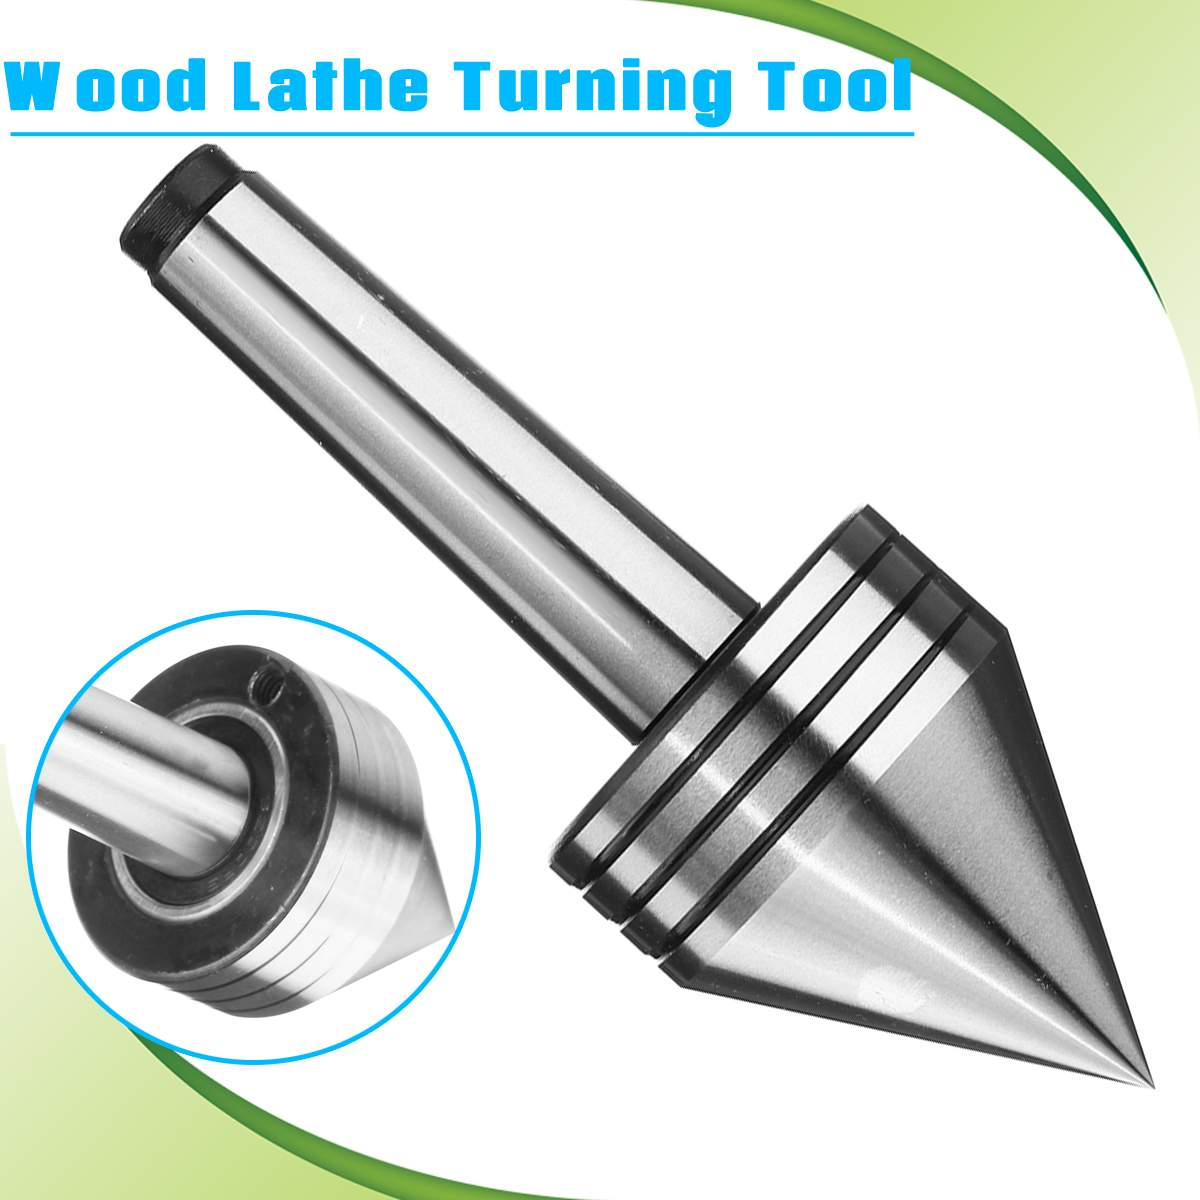 MT2 0.001mm 60 Degree Live Center Morse Taper Bearing Tailstock Center For CNC Cutter Lathe Tool For Metal Wood Lathe TurningMT2 0.001mm 60 Degree Live Center Morse Taper Bearing Tailstock Center For CNC Cutter Lathe Tool For Metal Wood Lathe Turning